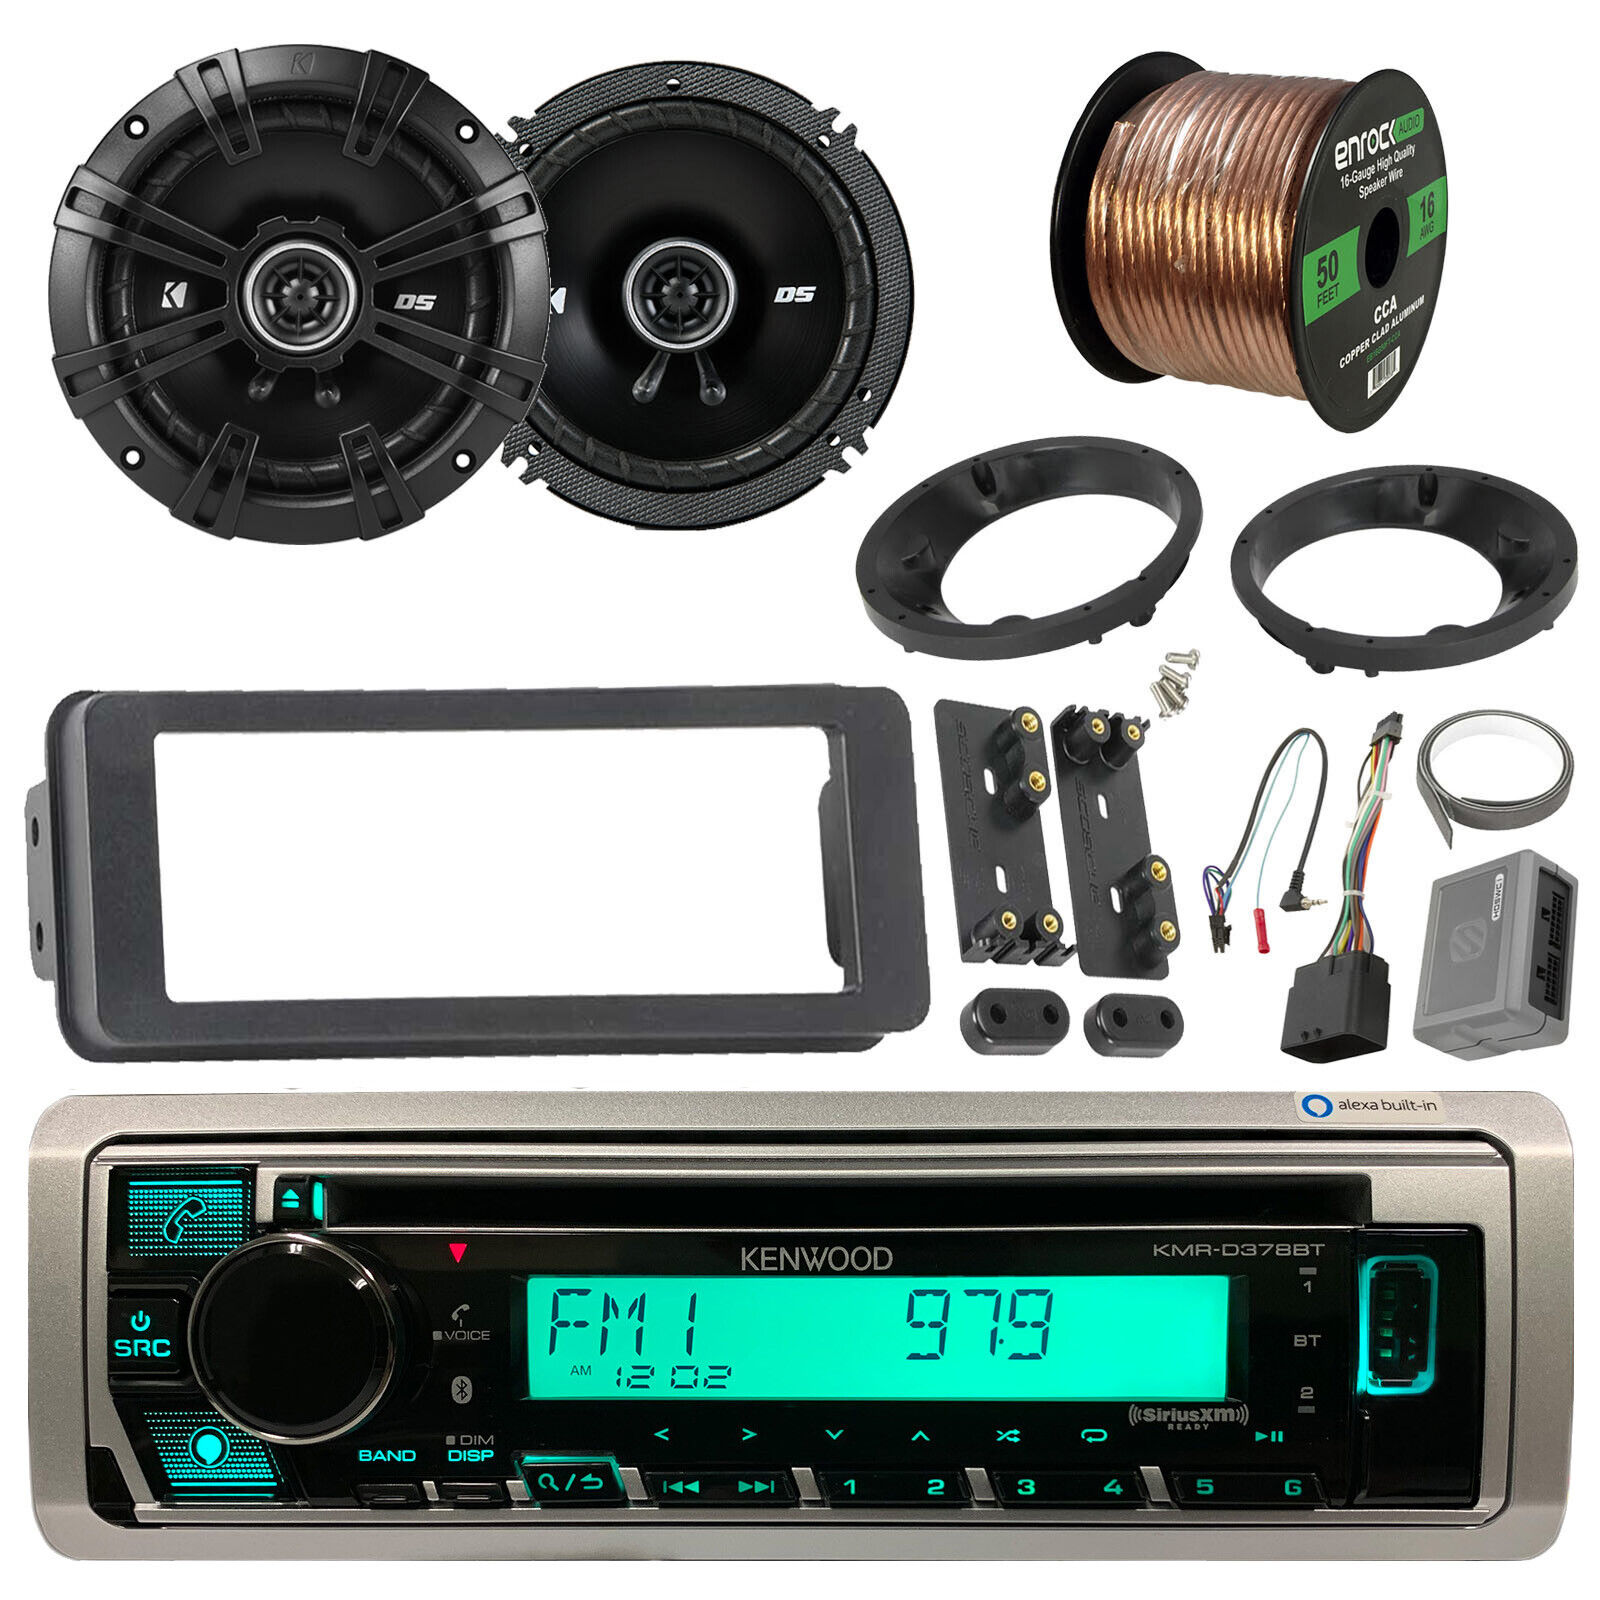 Kenwood Bluetooth Cd Radioscosche Install Harley Kit65 Speakers Harman Kardon Wiring Diagram 76160 06 1 Of 8only 4 Available